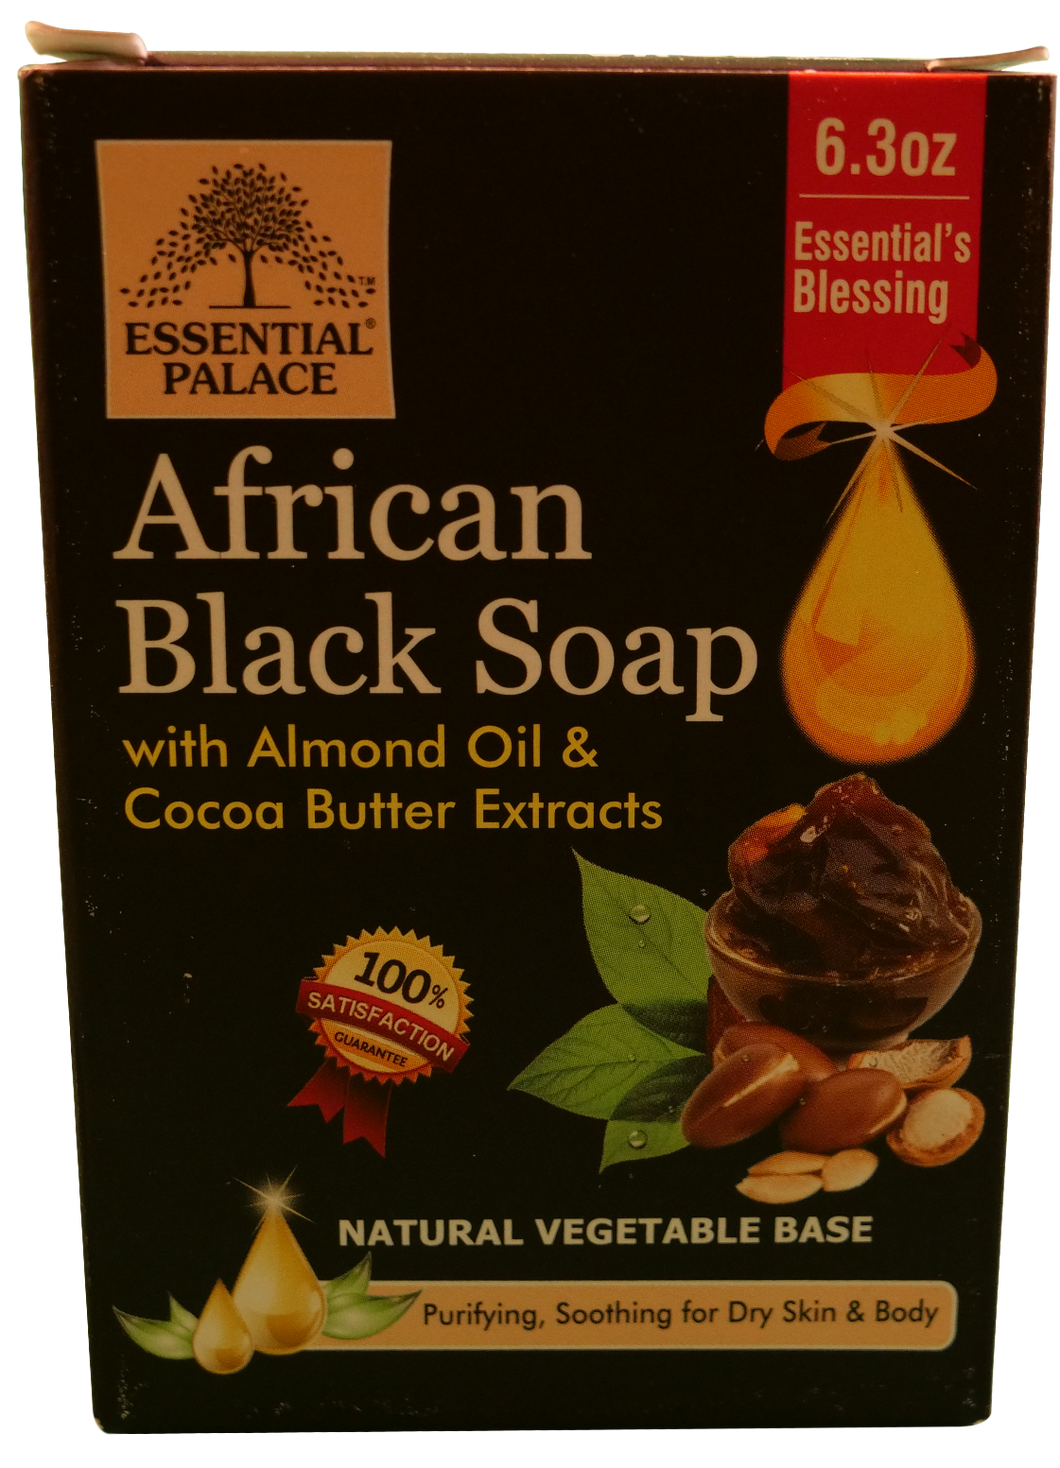 BLACK SOAP (Natural Vegetable Base) Net Weight: 6.3 oz.